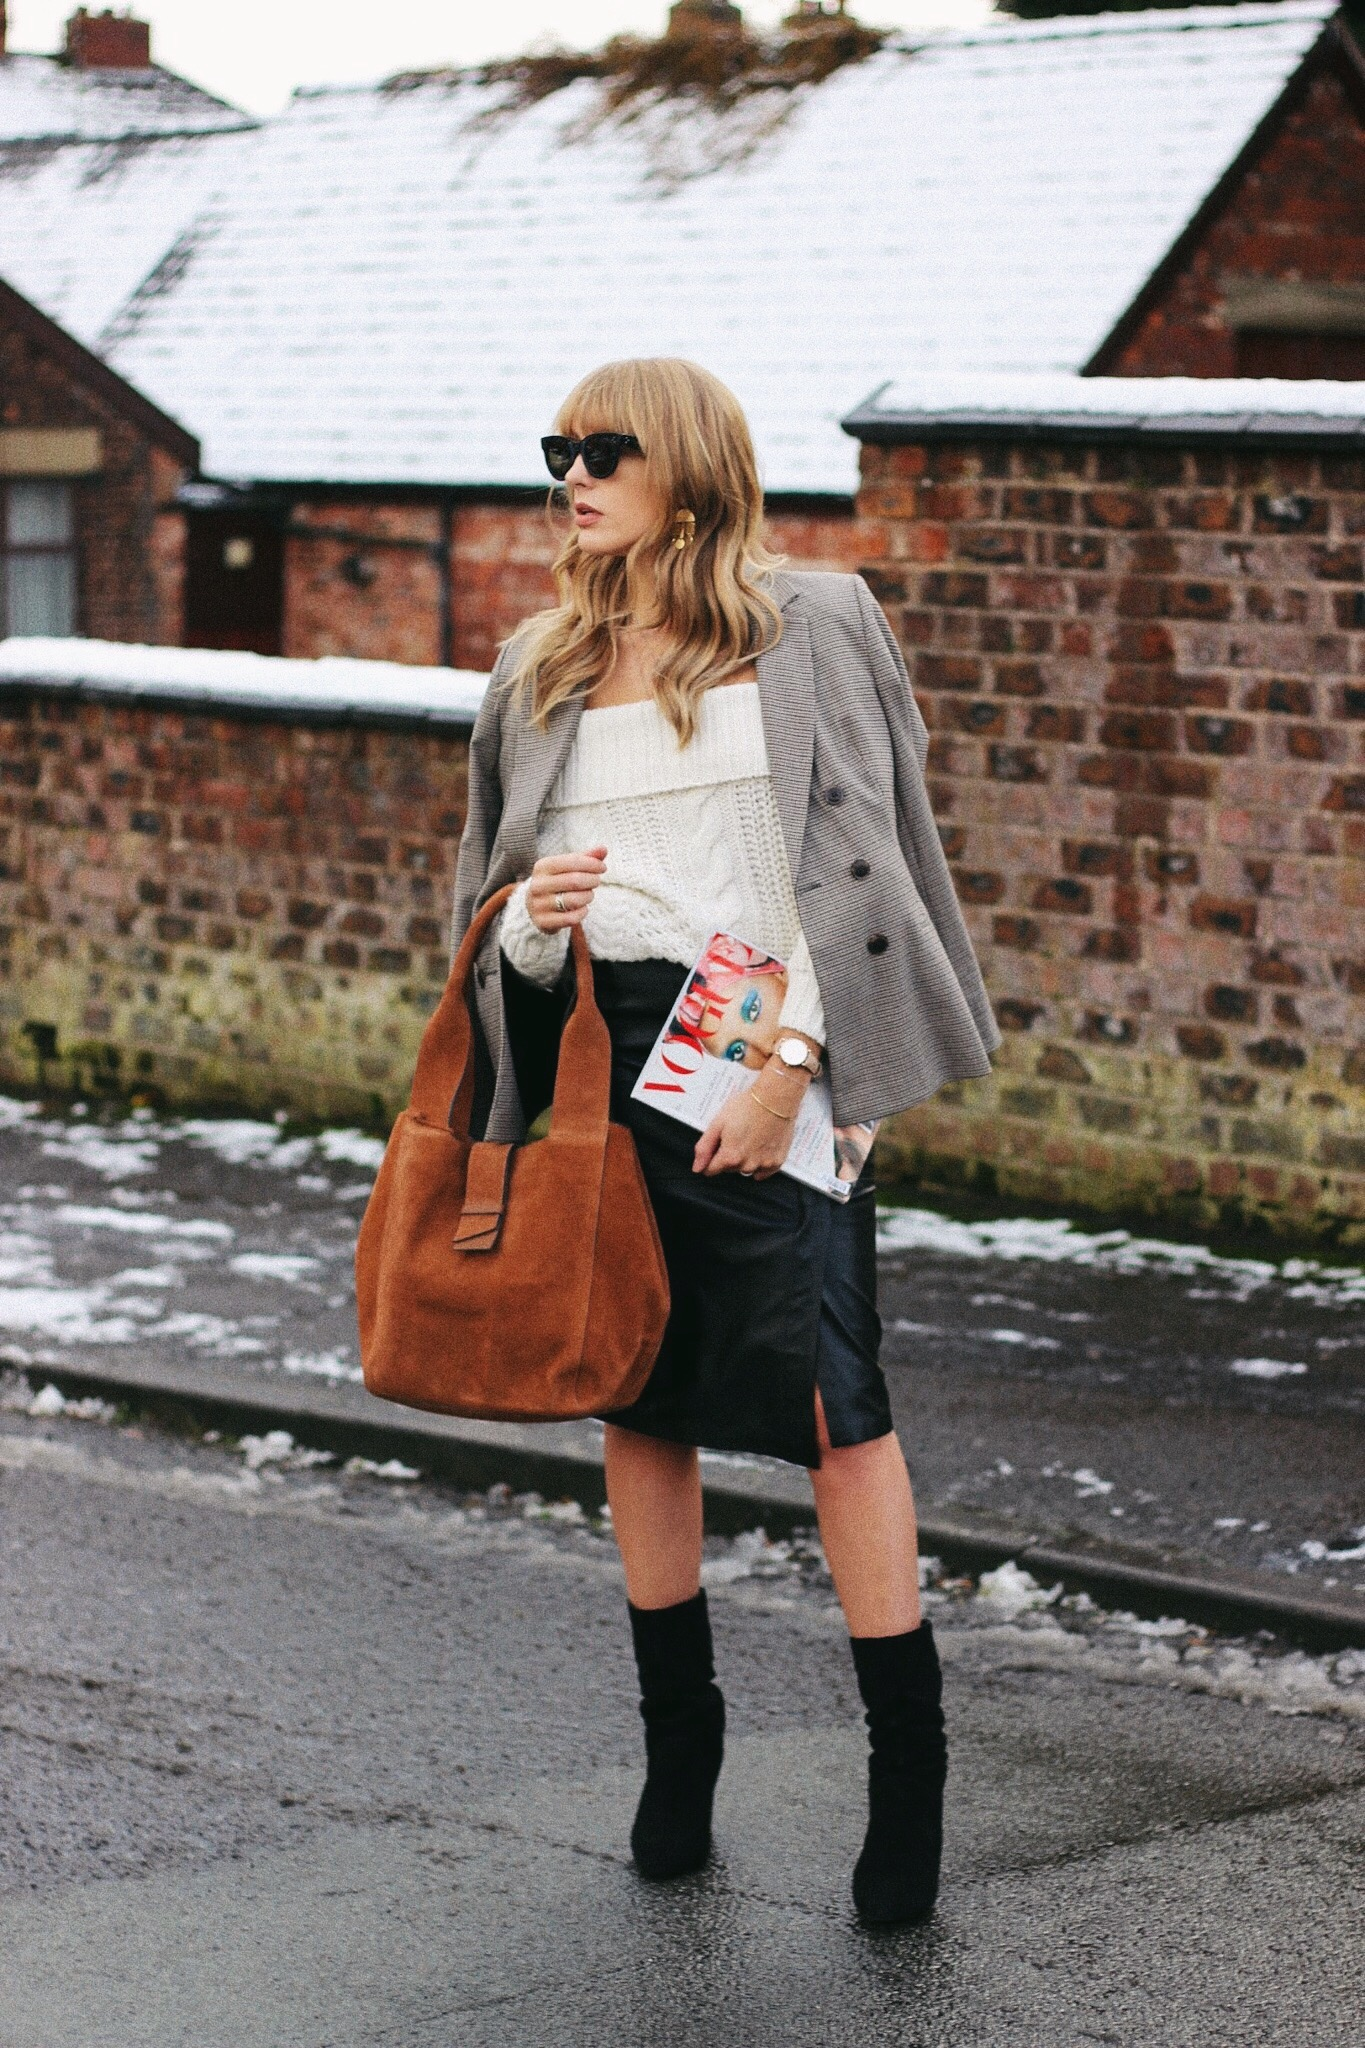 High street outfit inspiration for autumn and winter from Next